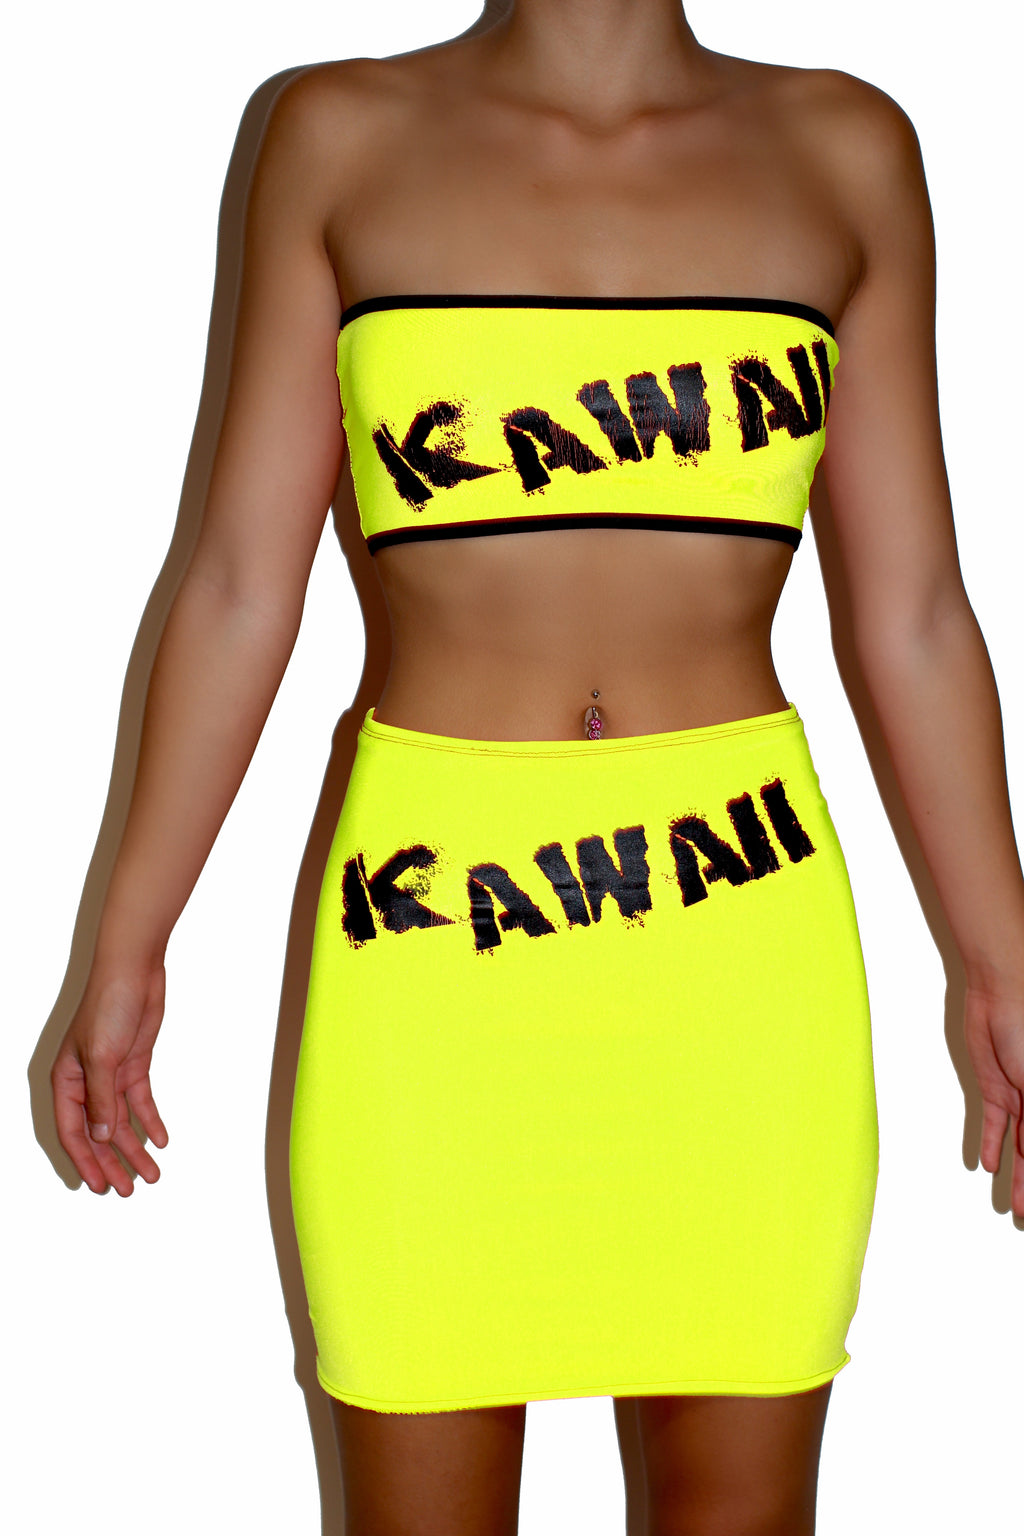 THE 'KAWAII' TUBE TOP pink/green/orange/yellow